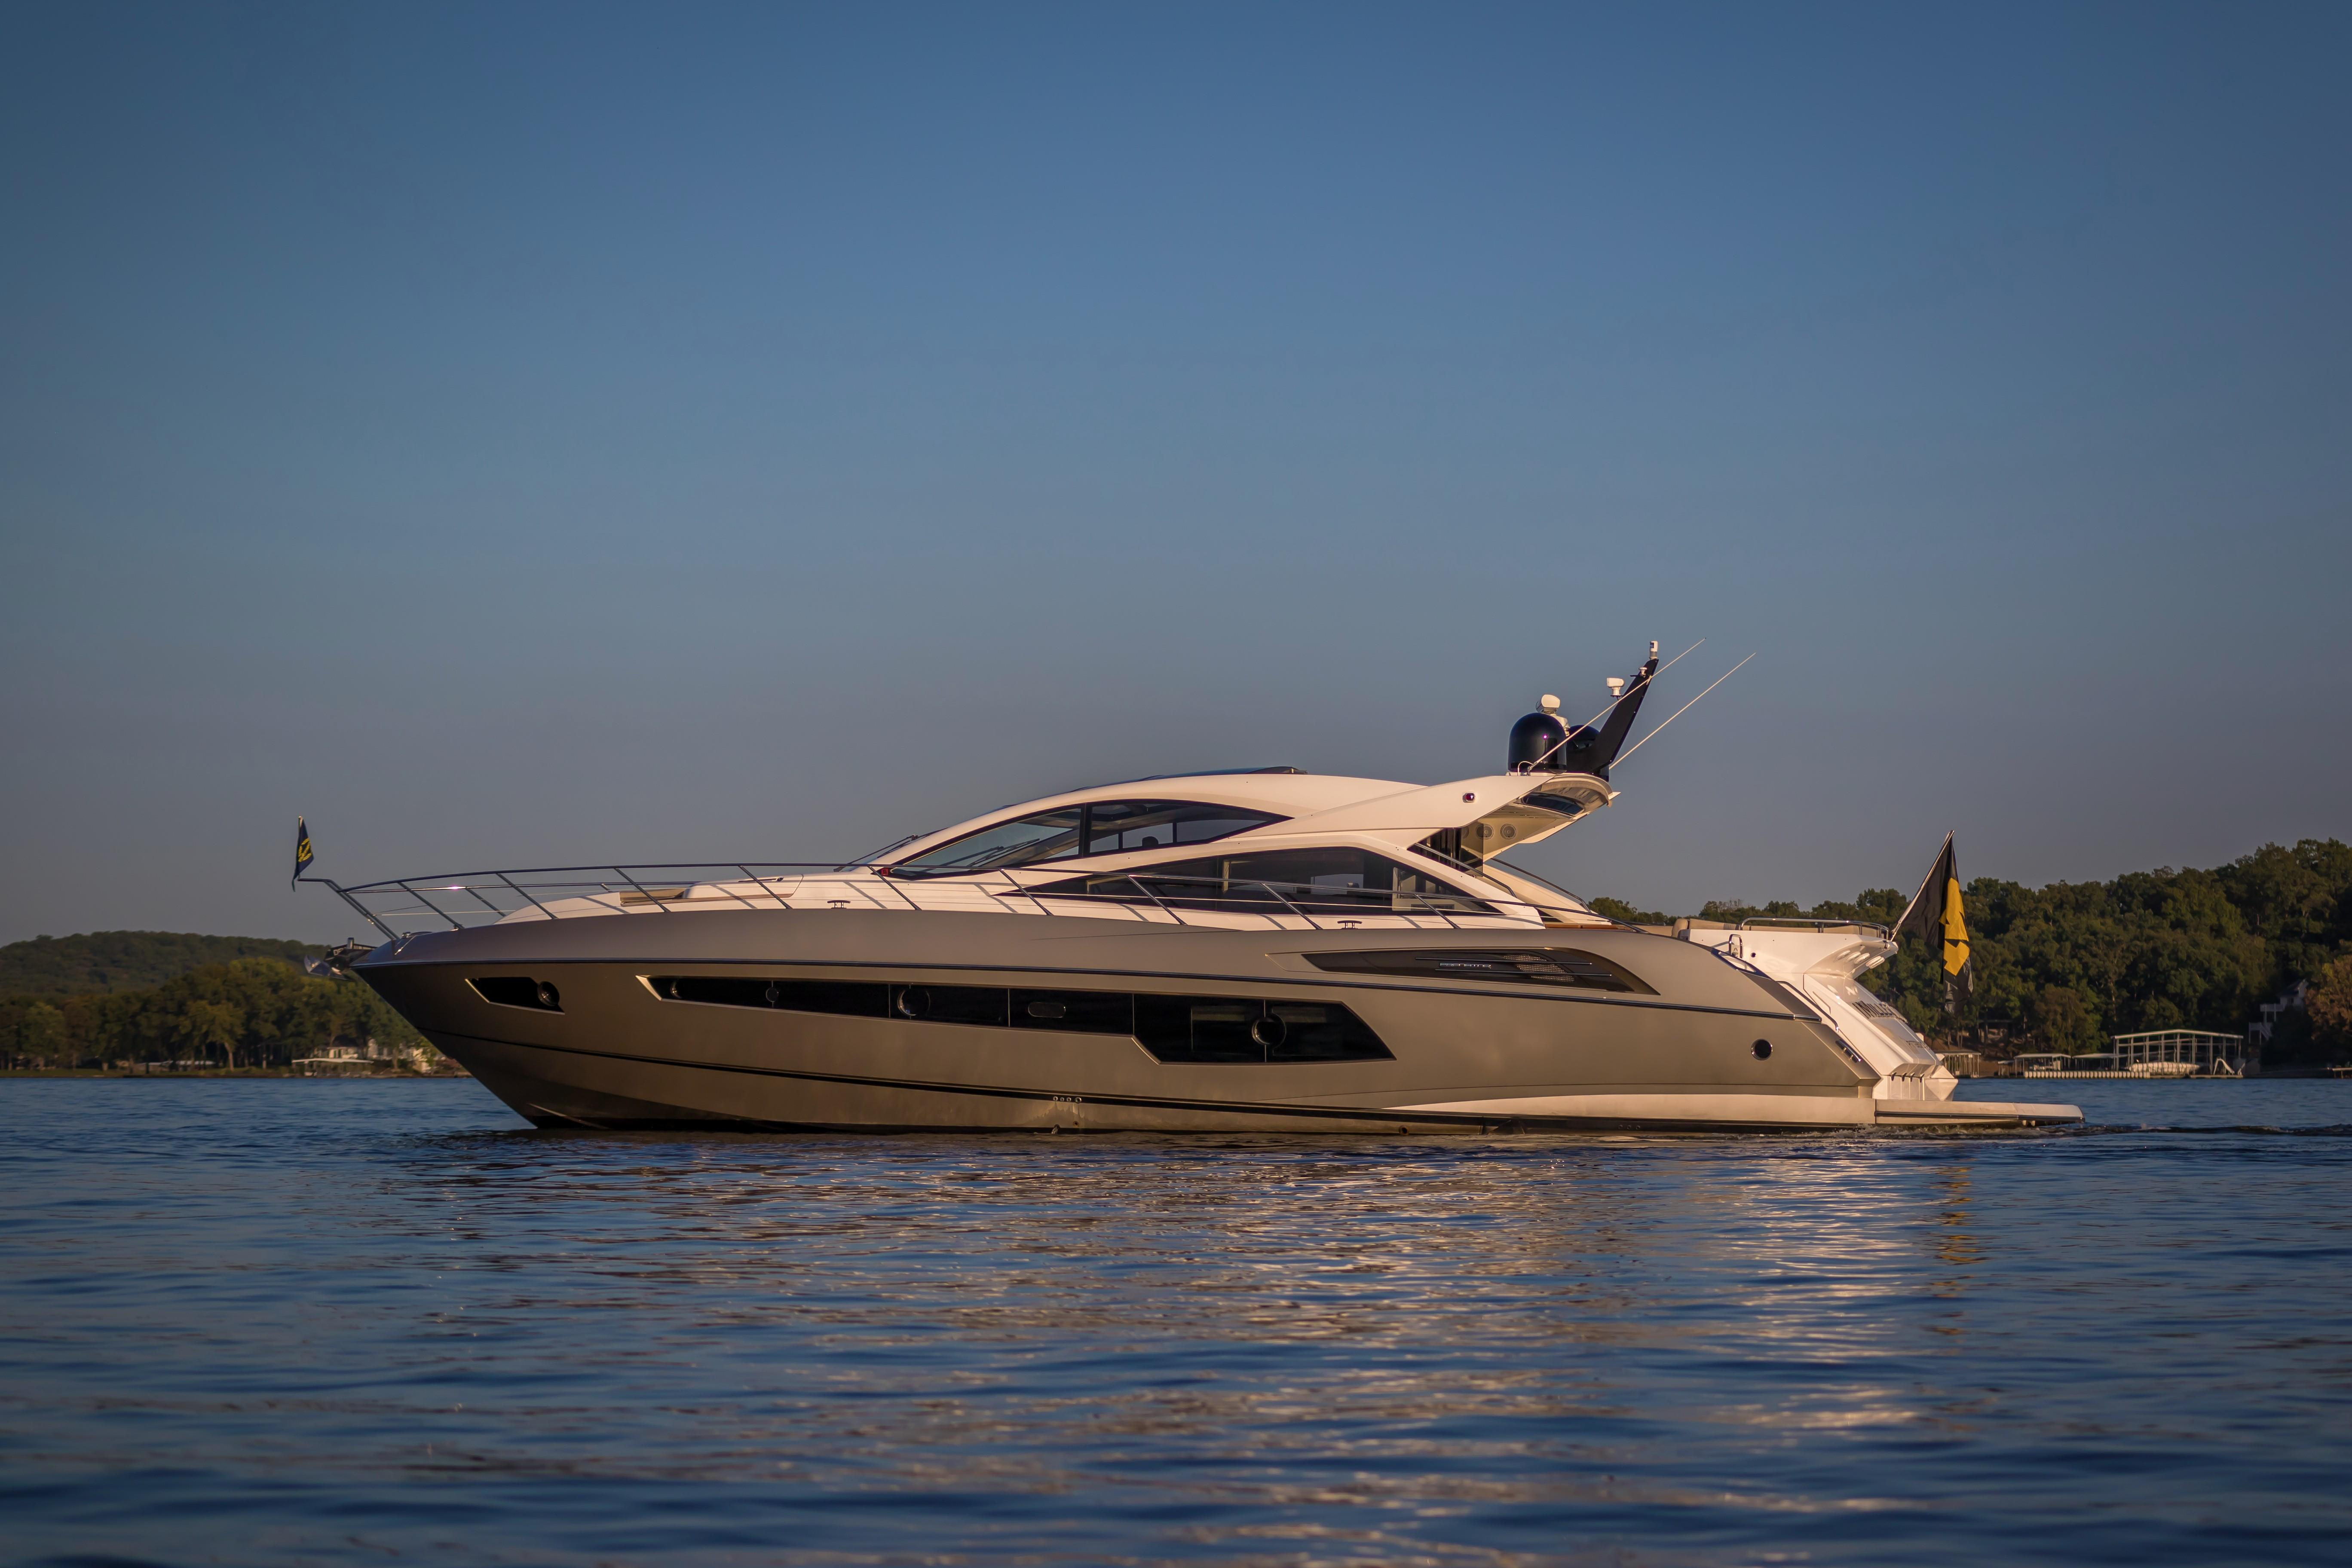 2014 sunseeker predator 68 yacht for sale in lake ozark  mo